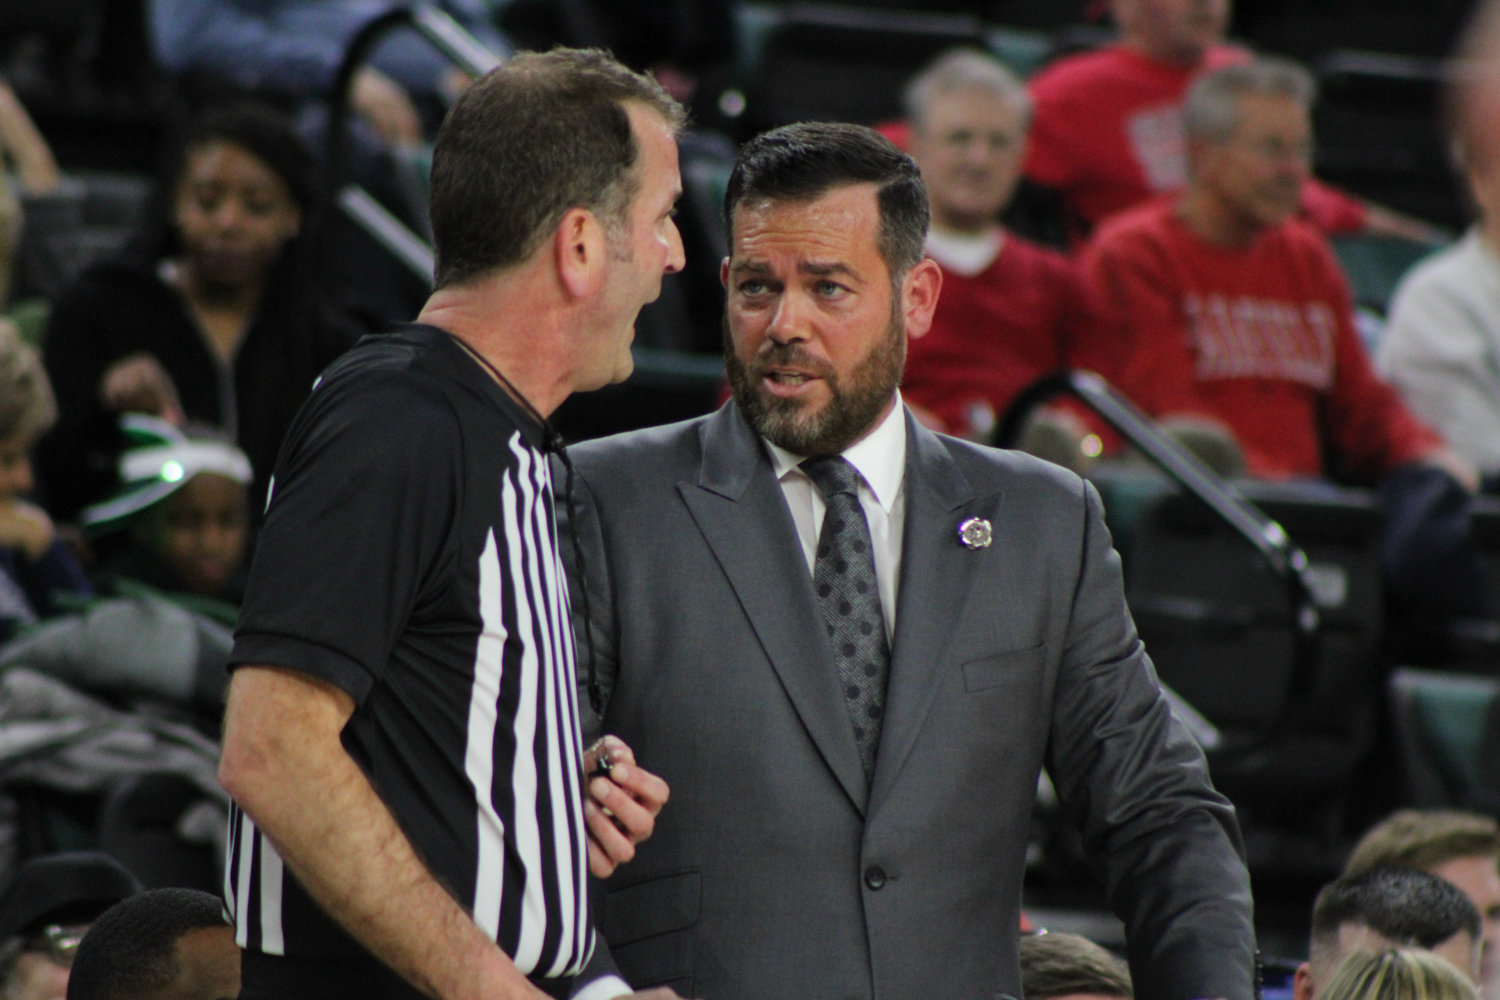 Manhattan basketball coach Steve Masiello is trying to get used to the new normal as he tries to recruit for next year's team in this new, evolving pandemic era.